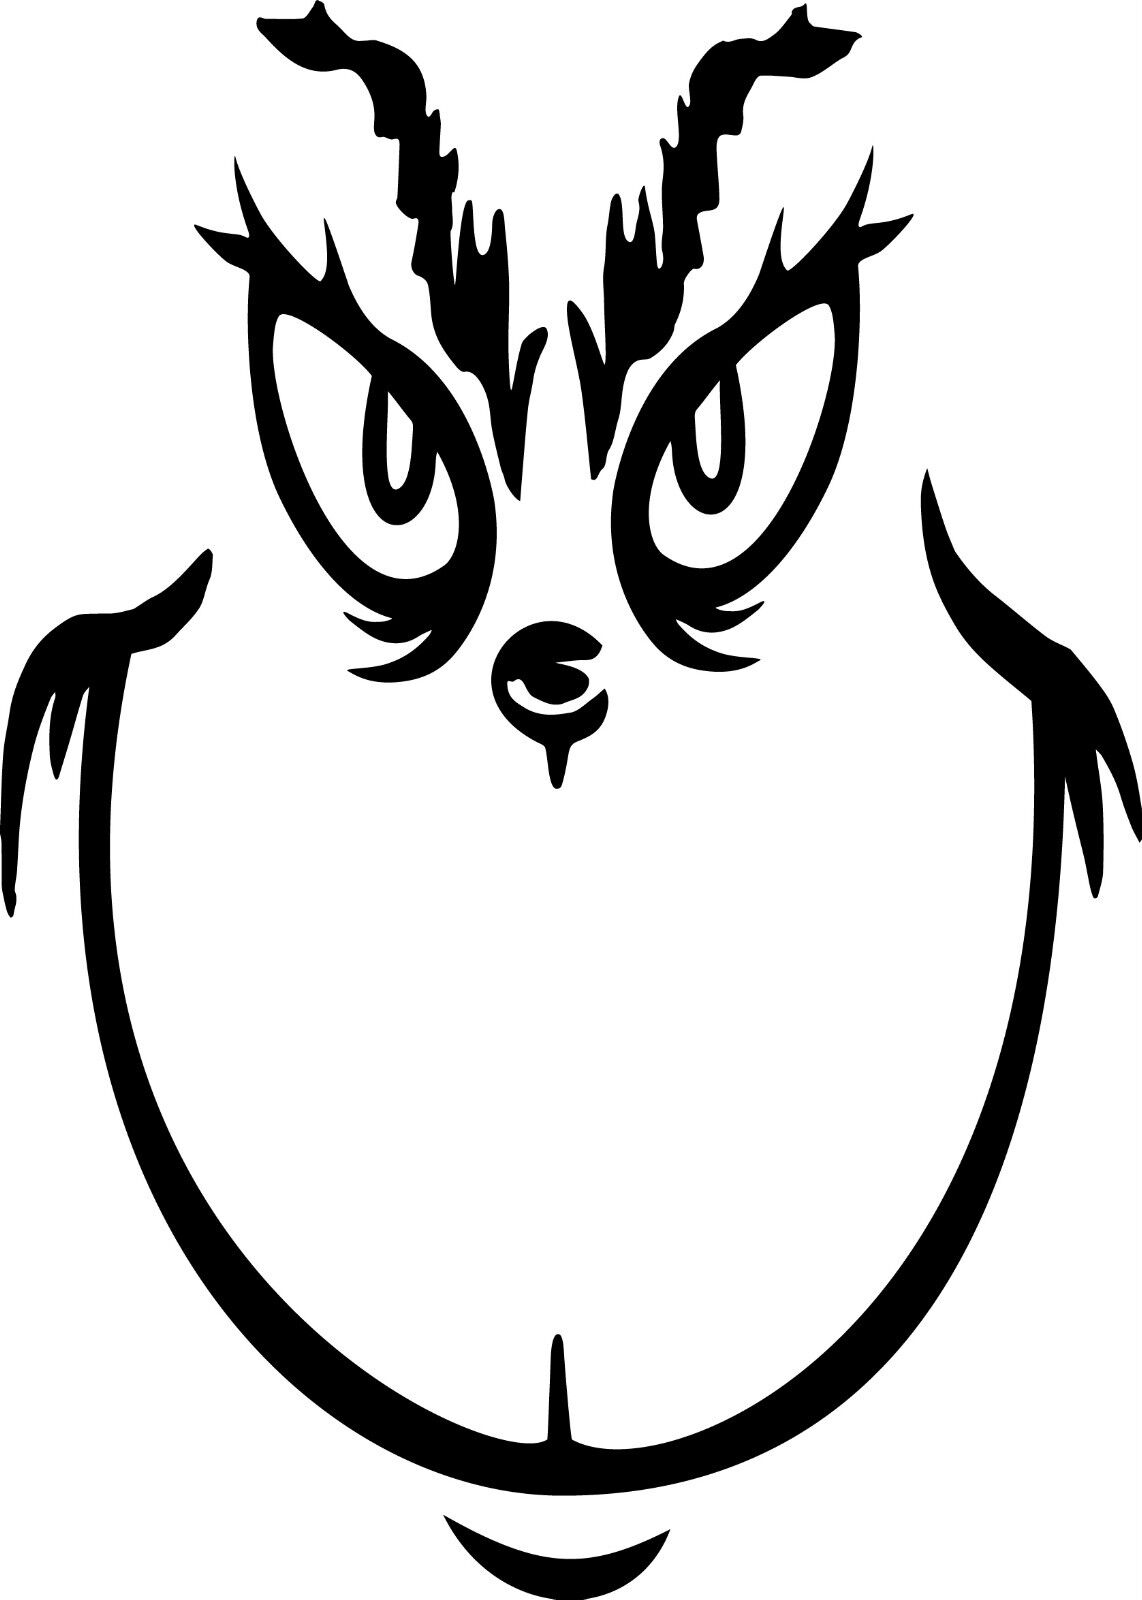 Vinyl Decal Grinch Face! Calendared Vinyl, Various colors and sizes!